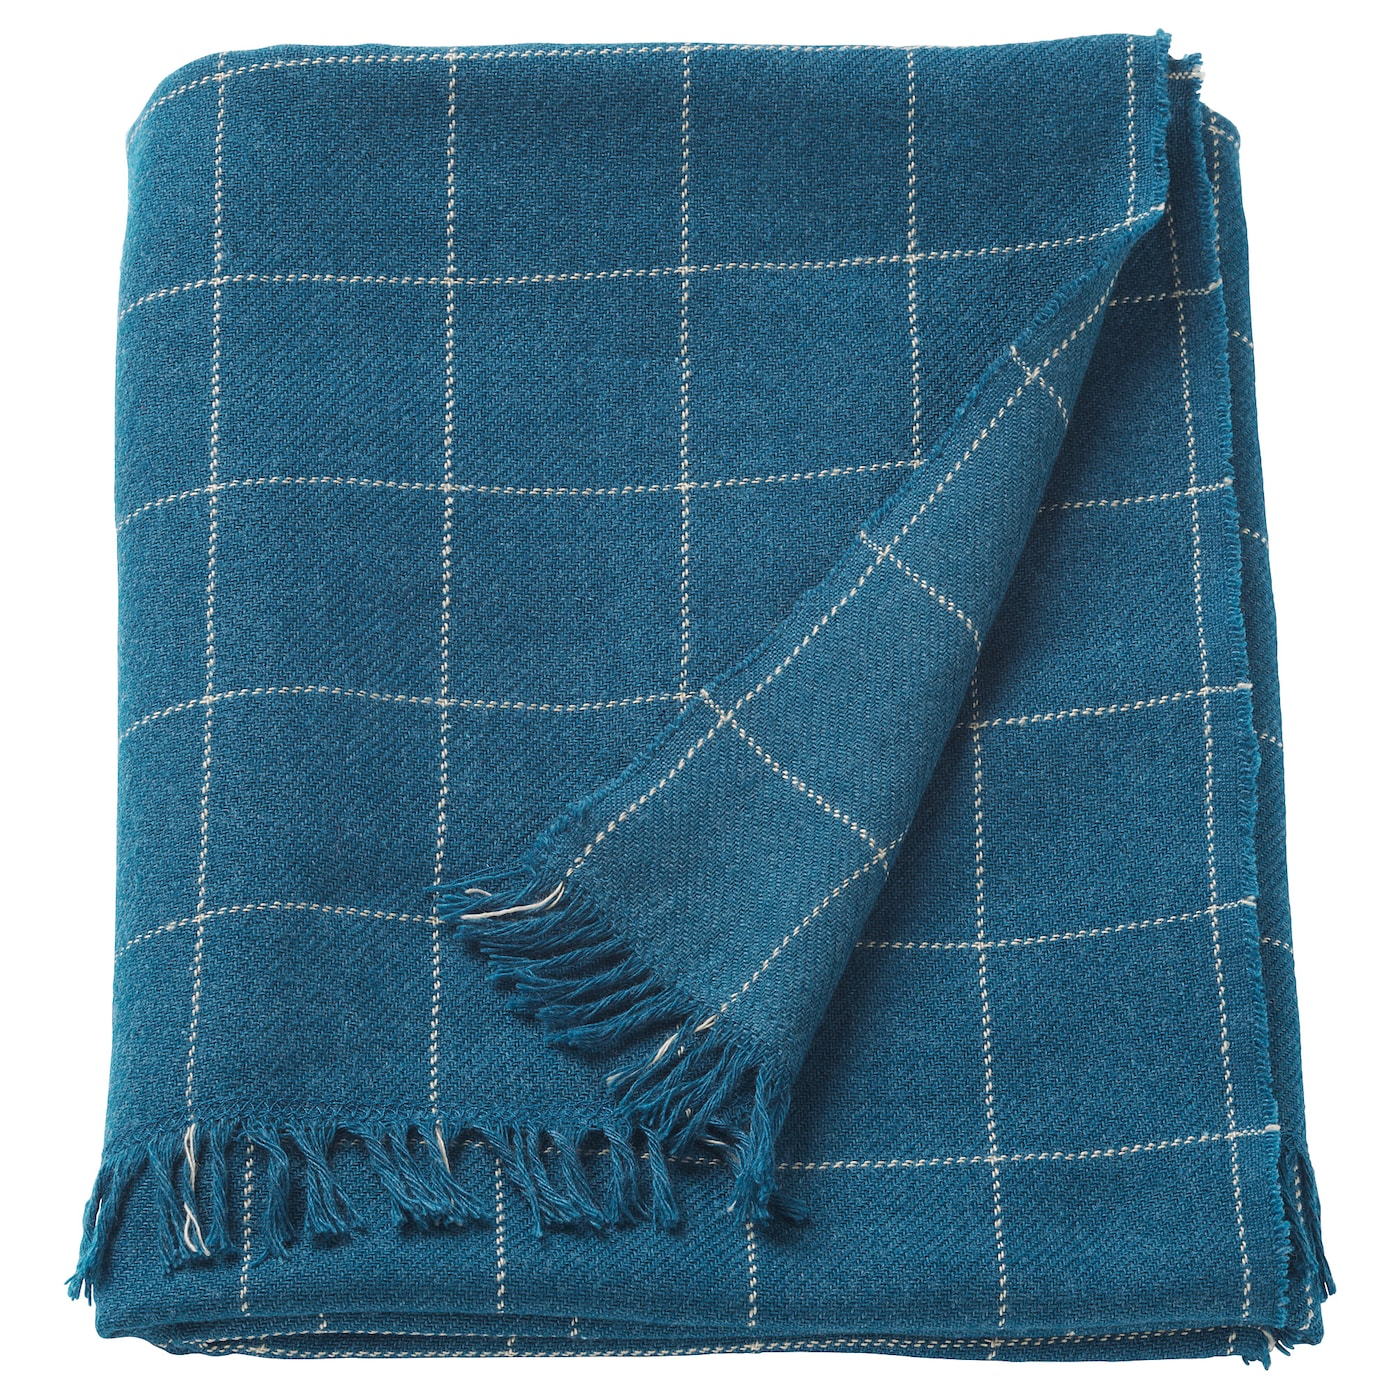 IKEA VÅRKRAGE throw